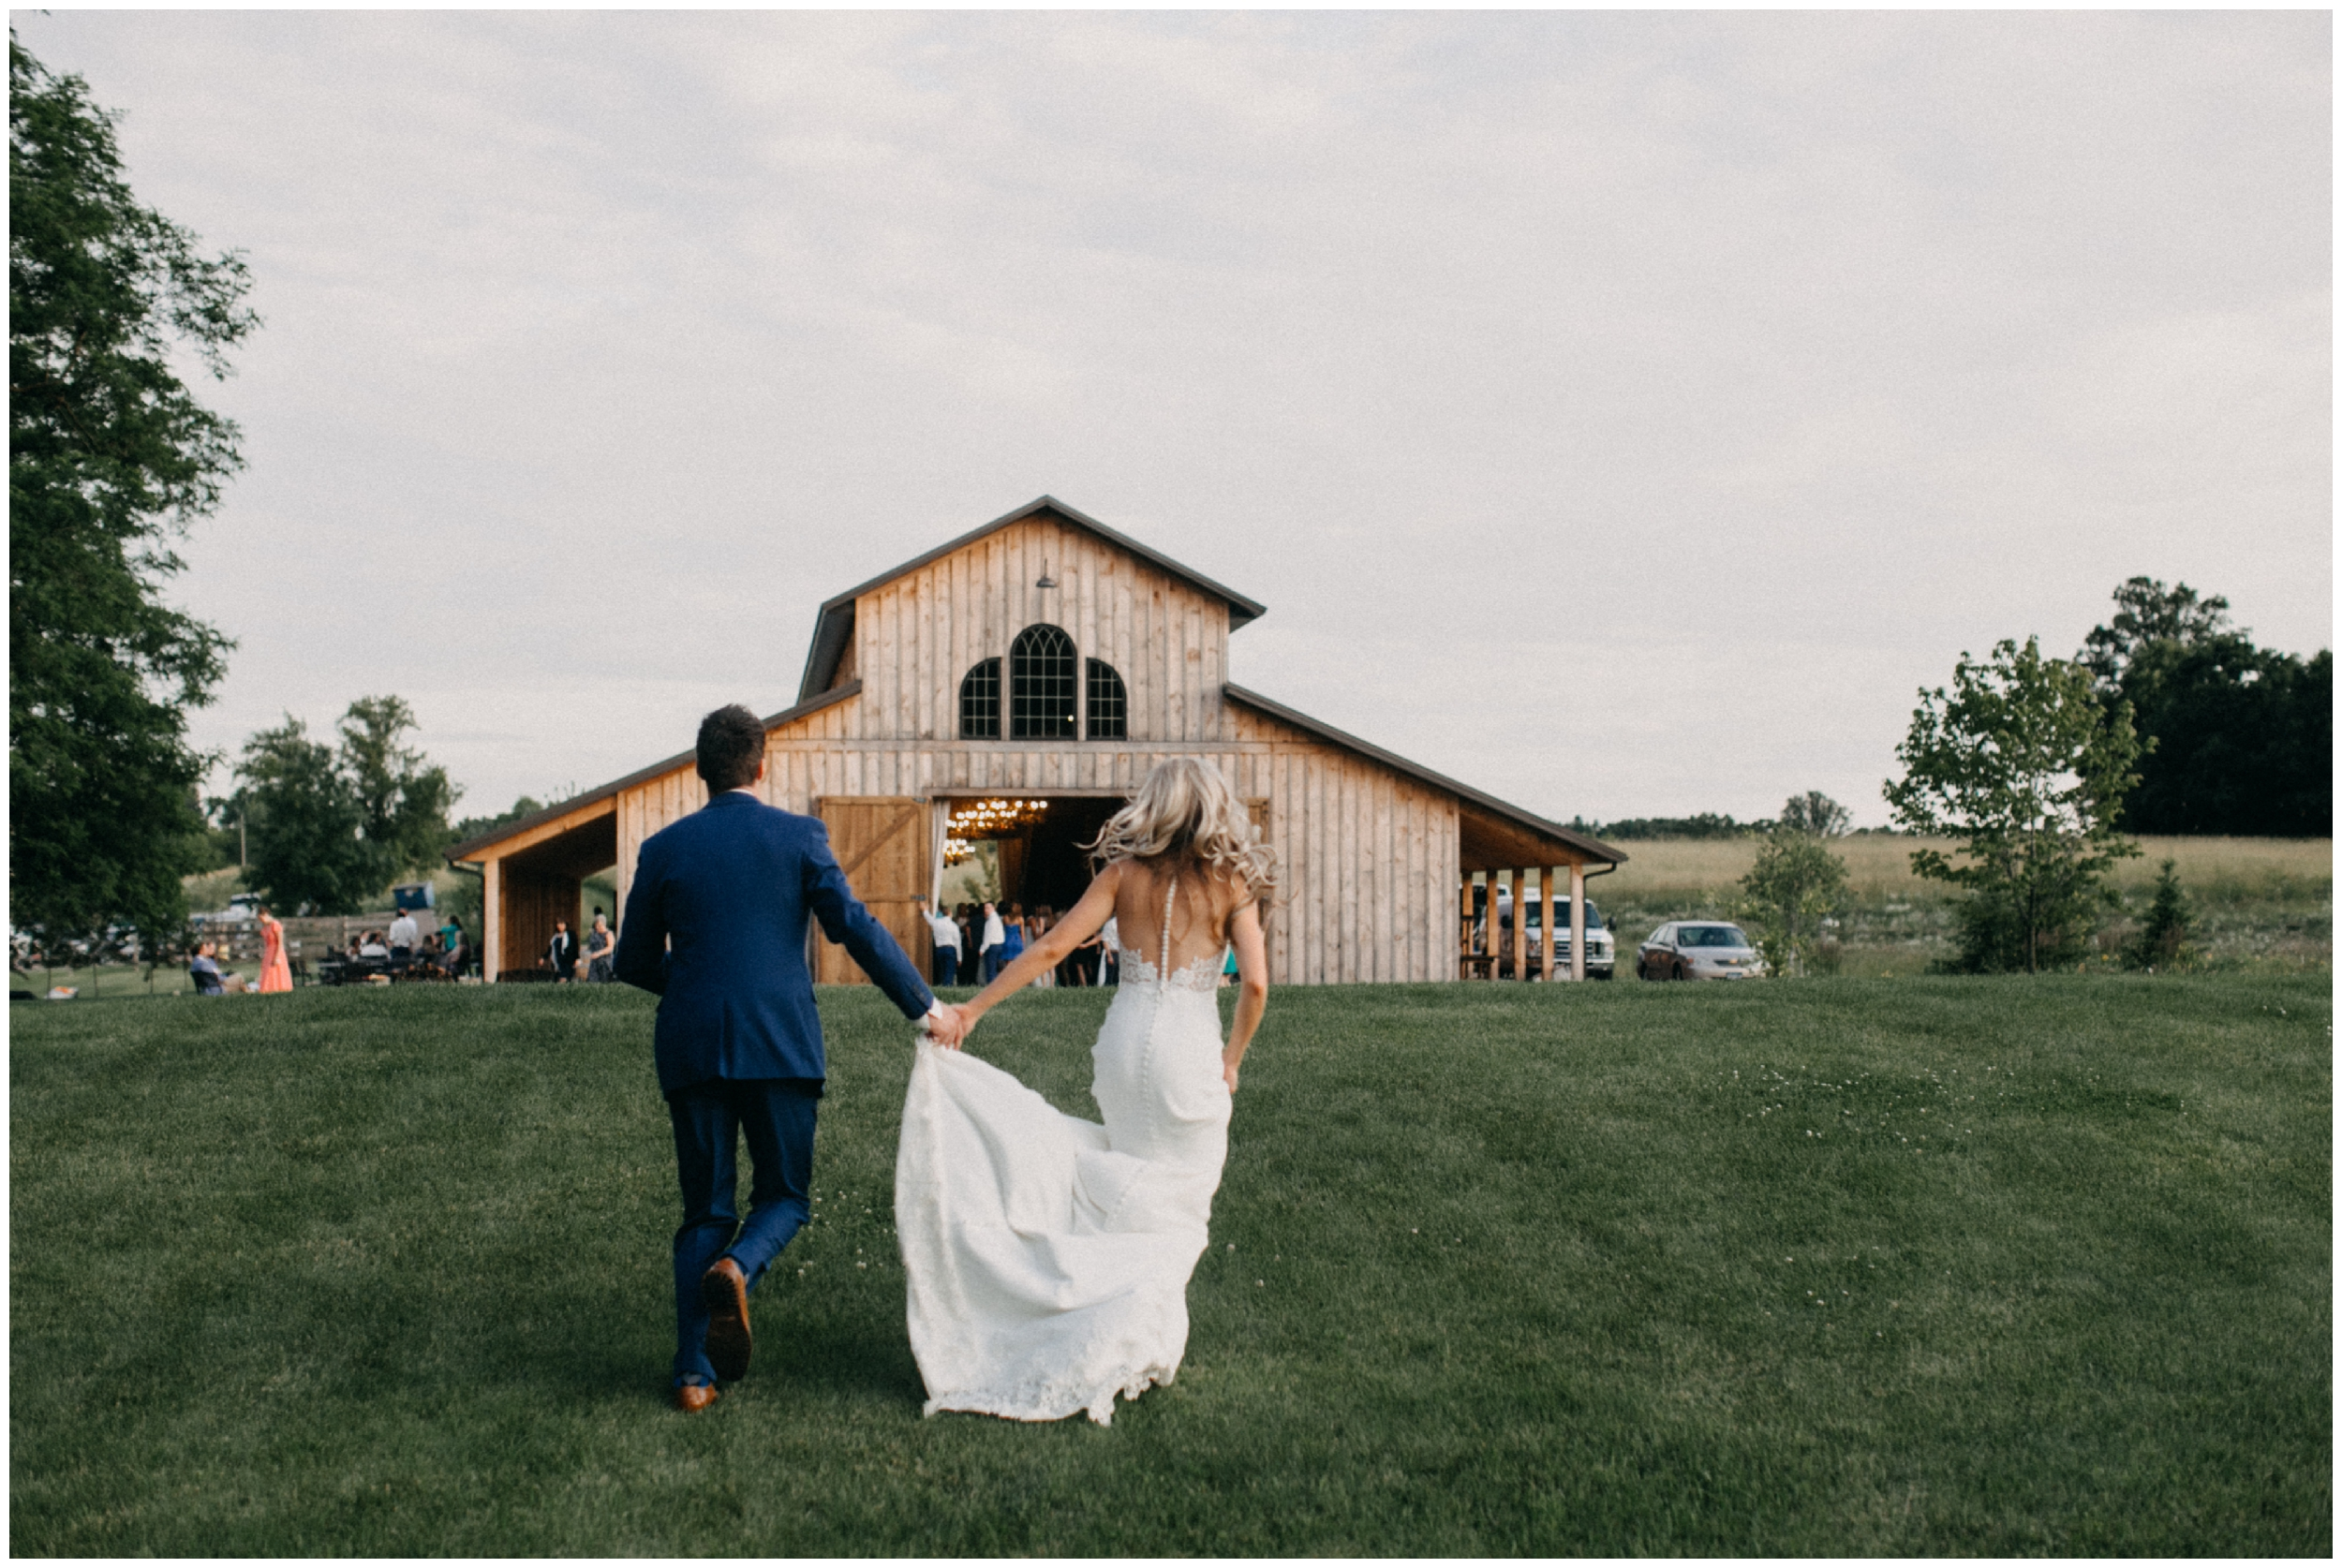 Outdoor wedding reception at Creekside Farm